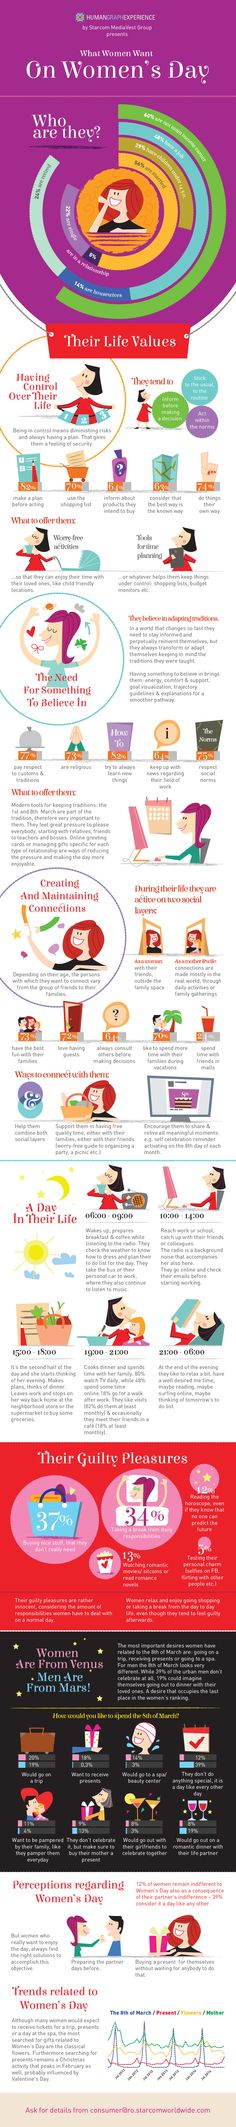 What Women Want on Women's Day?